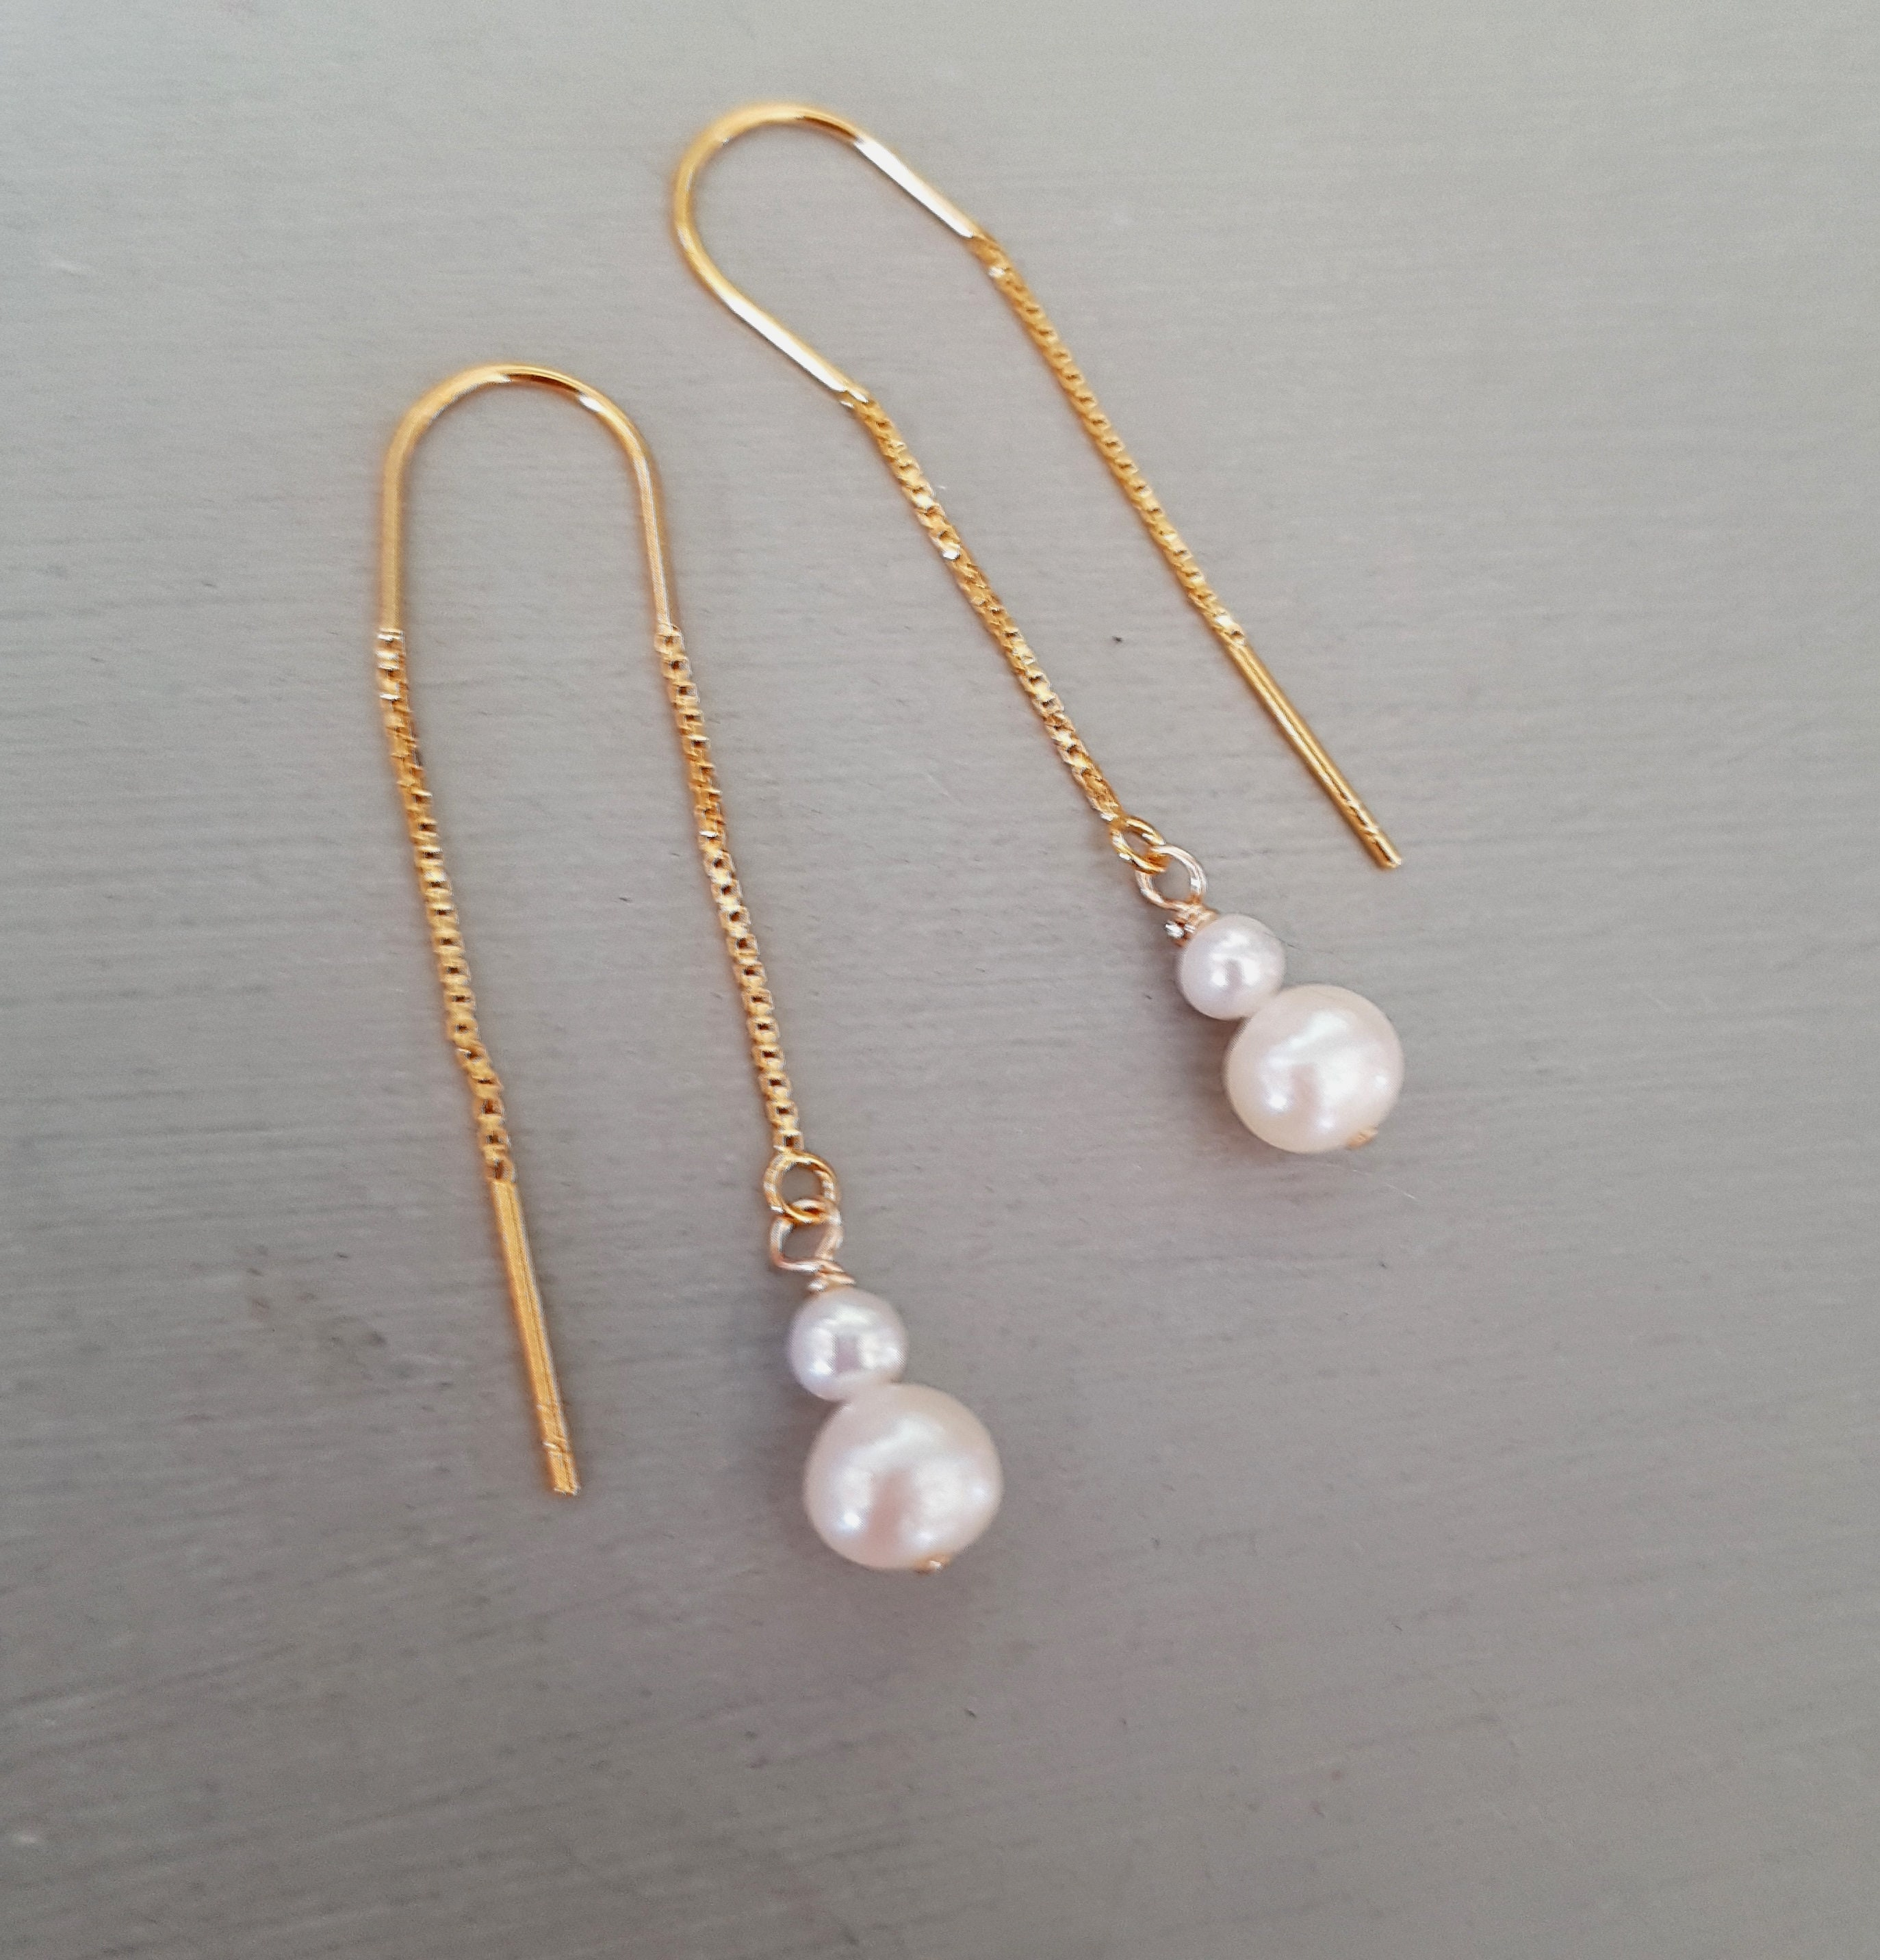 discount for earrings sale pearls p pearl with cheap real gucci ring men